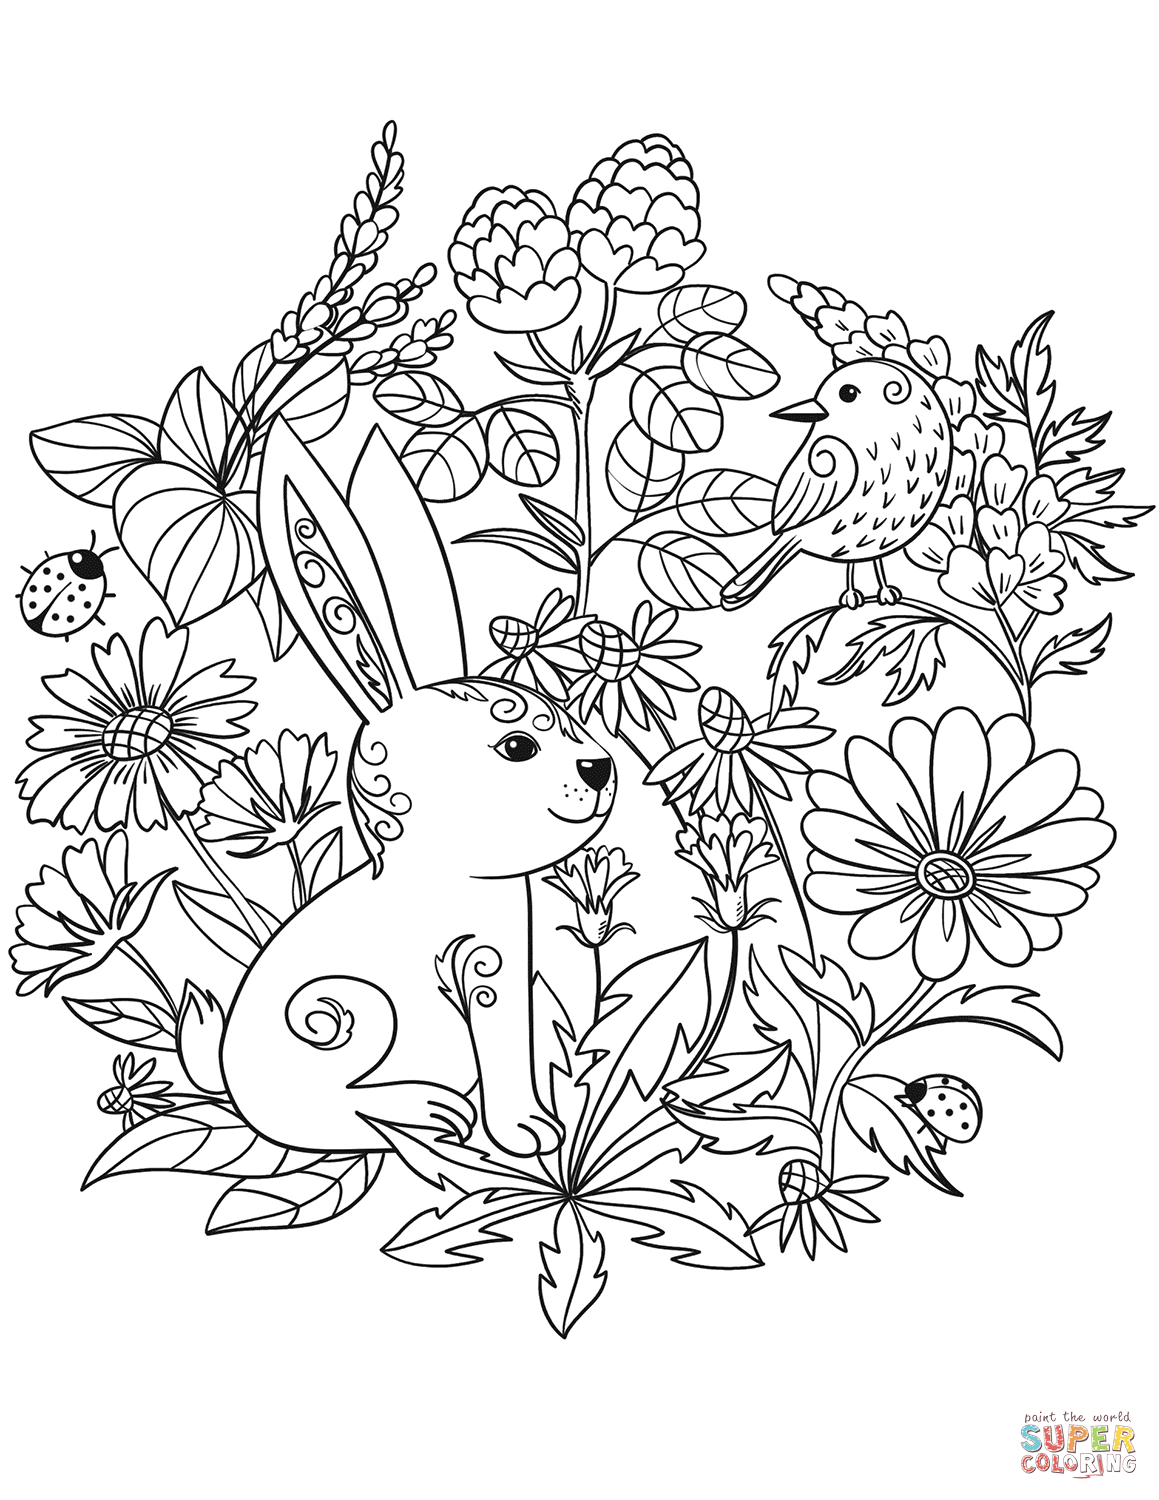 Rabbit And Bird Coloring Page